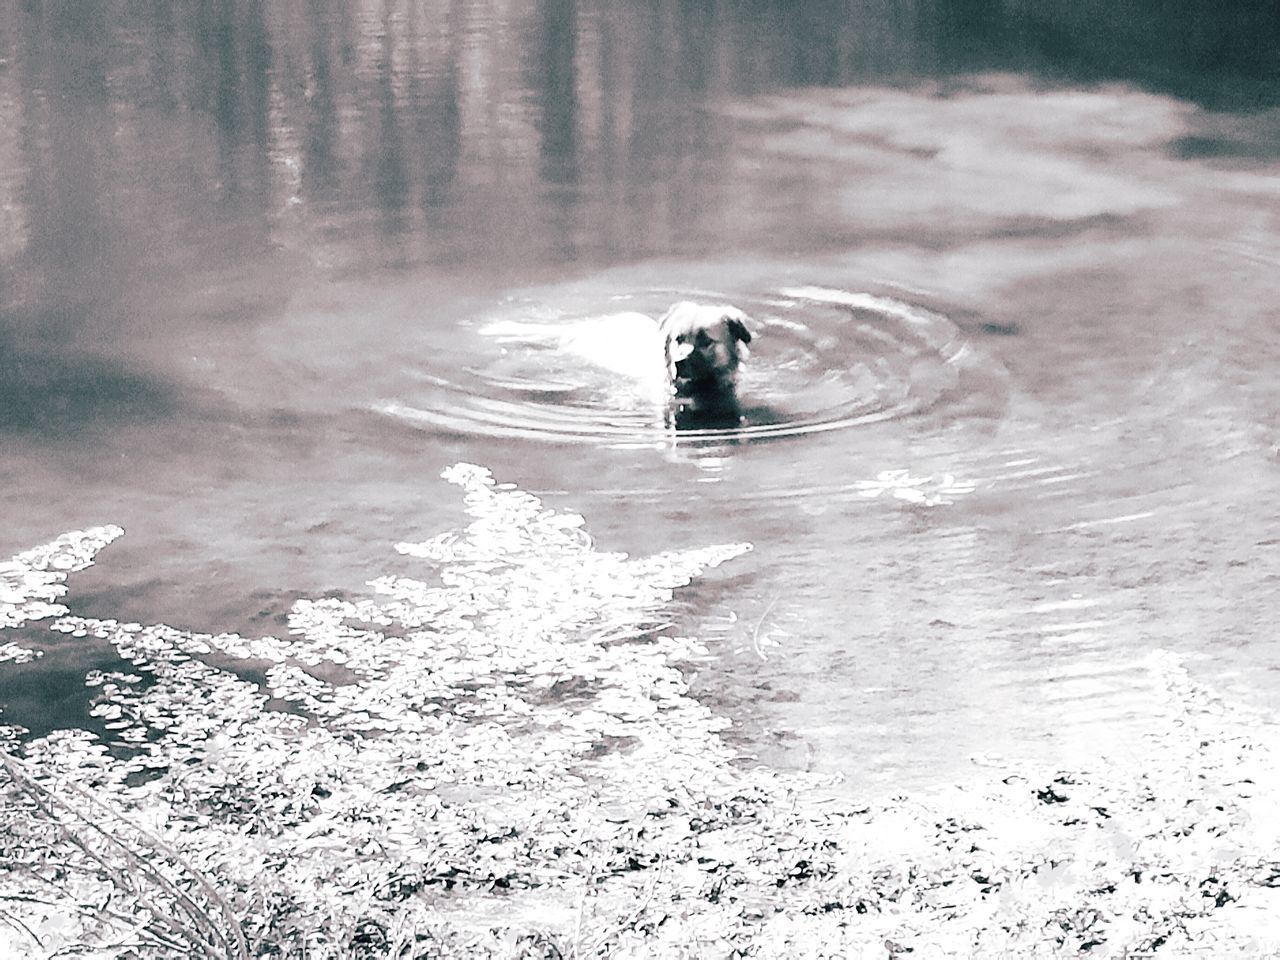 Outdoors Dog Dog Swimming Beauty In Nature Meditation Simple Check This Out Pattern, Texture, Shape And Form Simplistic Fine Art Photography Simple Moments Pond Country Animal Swimming Cooling Off